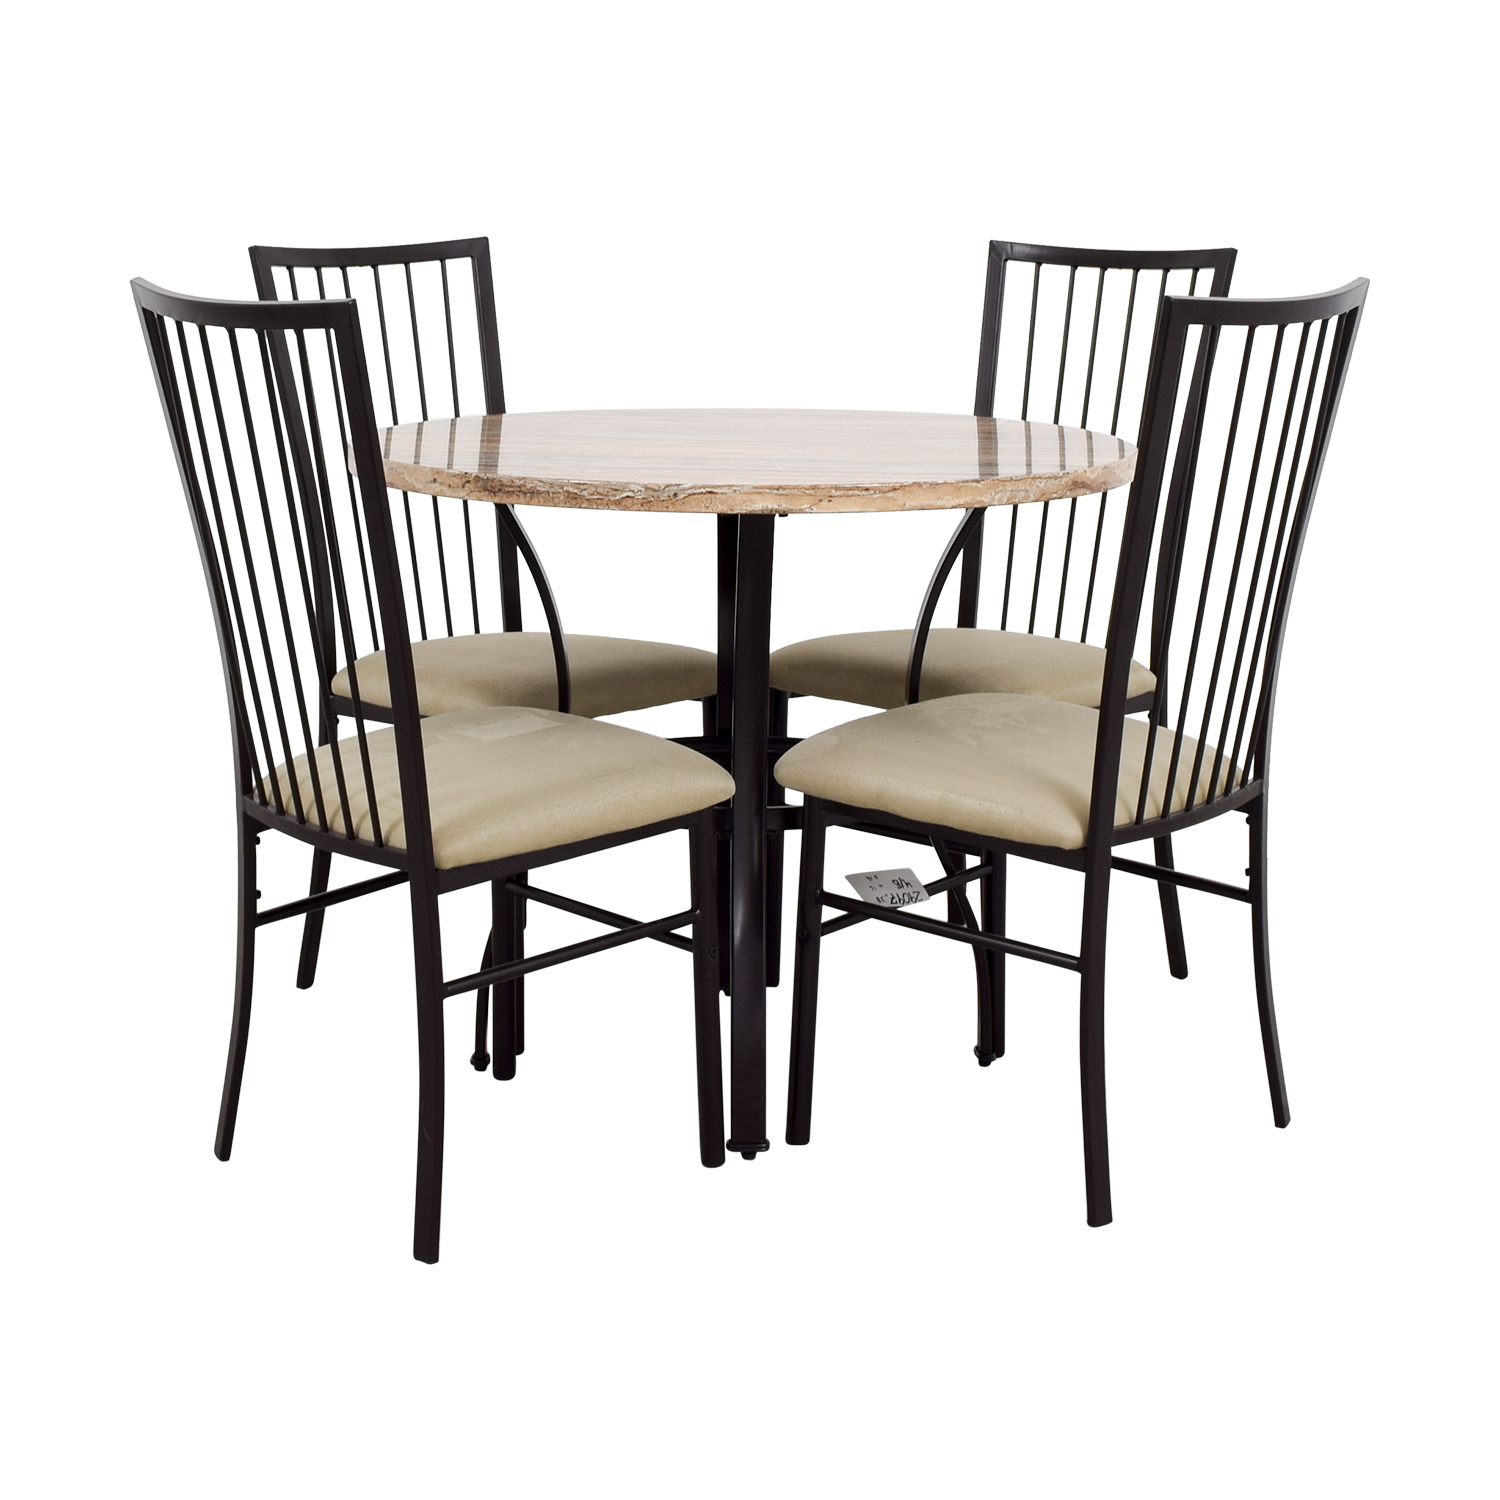 OFF Wayfair Wayfair Stone Dining Table Set Tables - Wayfair outdoor table and chairs